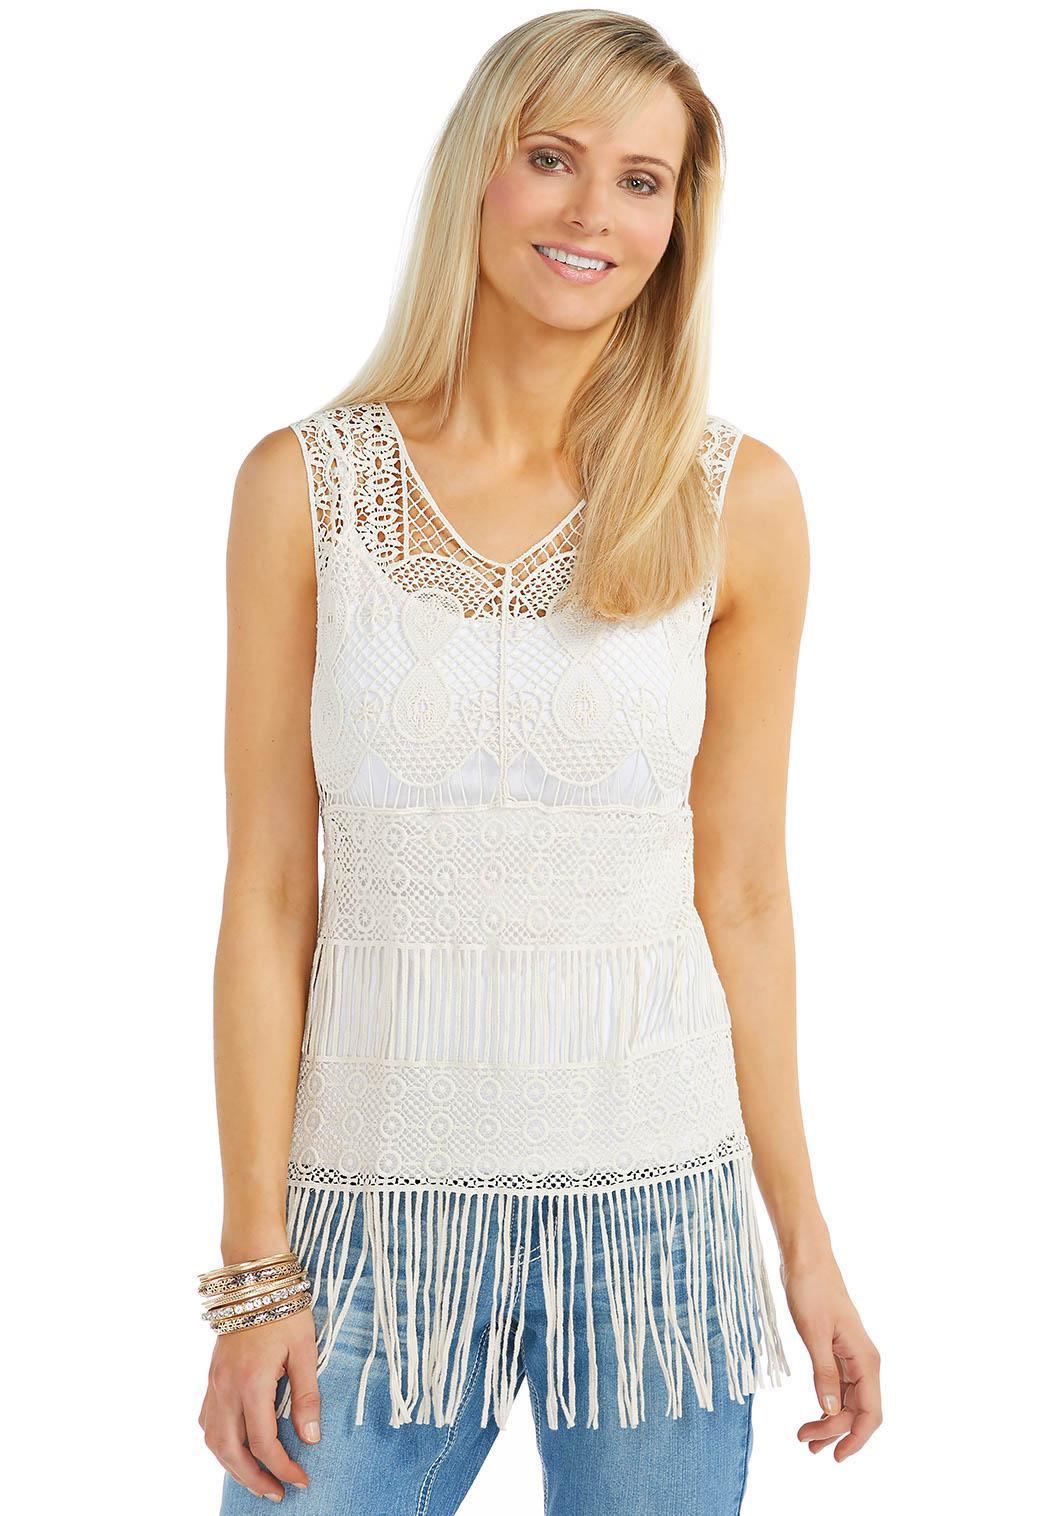 Awesome Cato Fashions Crochet Tank Of Delightful 47 Images Crochet Tank